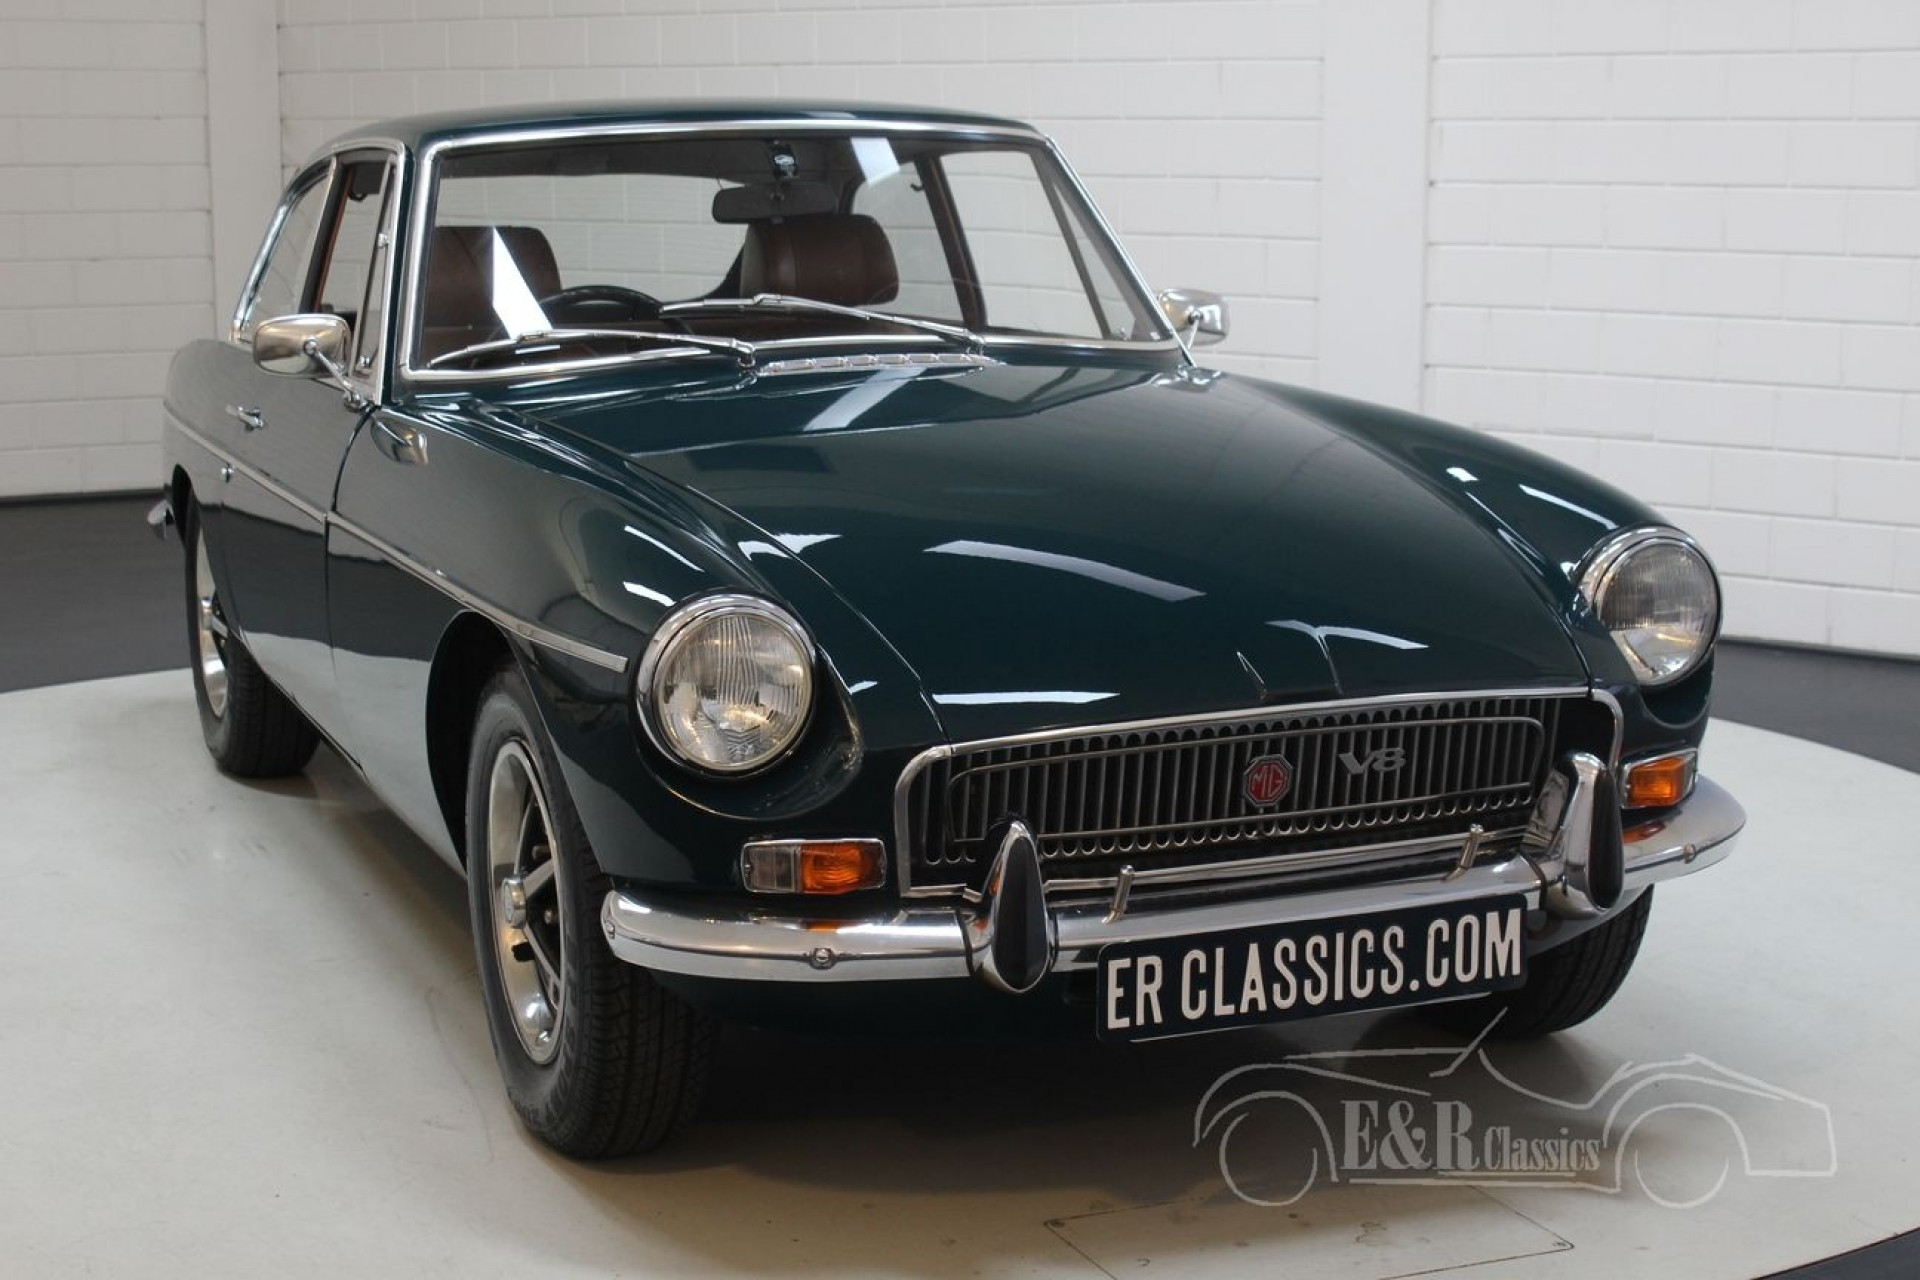 MGB GT V8 Costello 1972 for sale at ERclassics